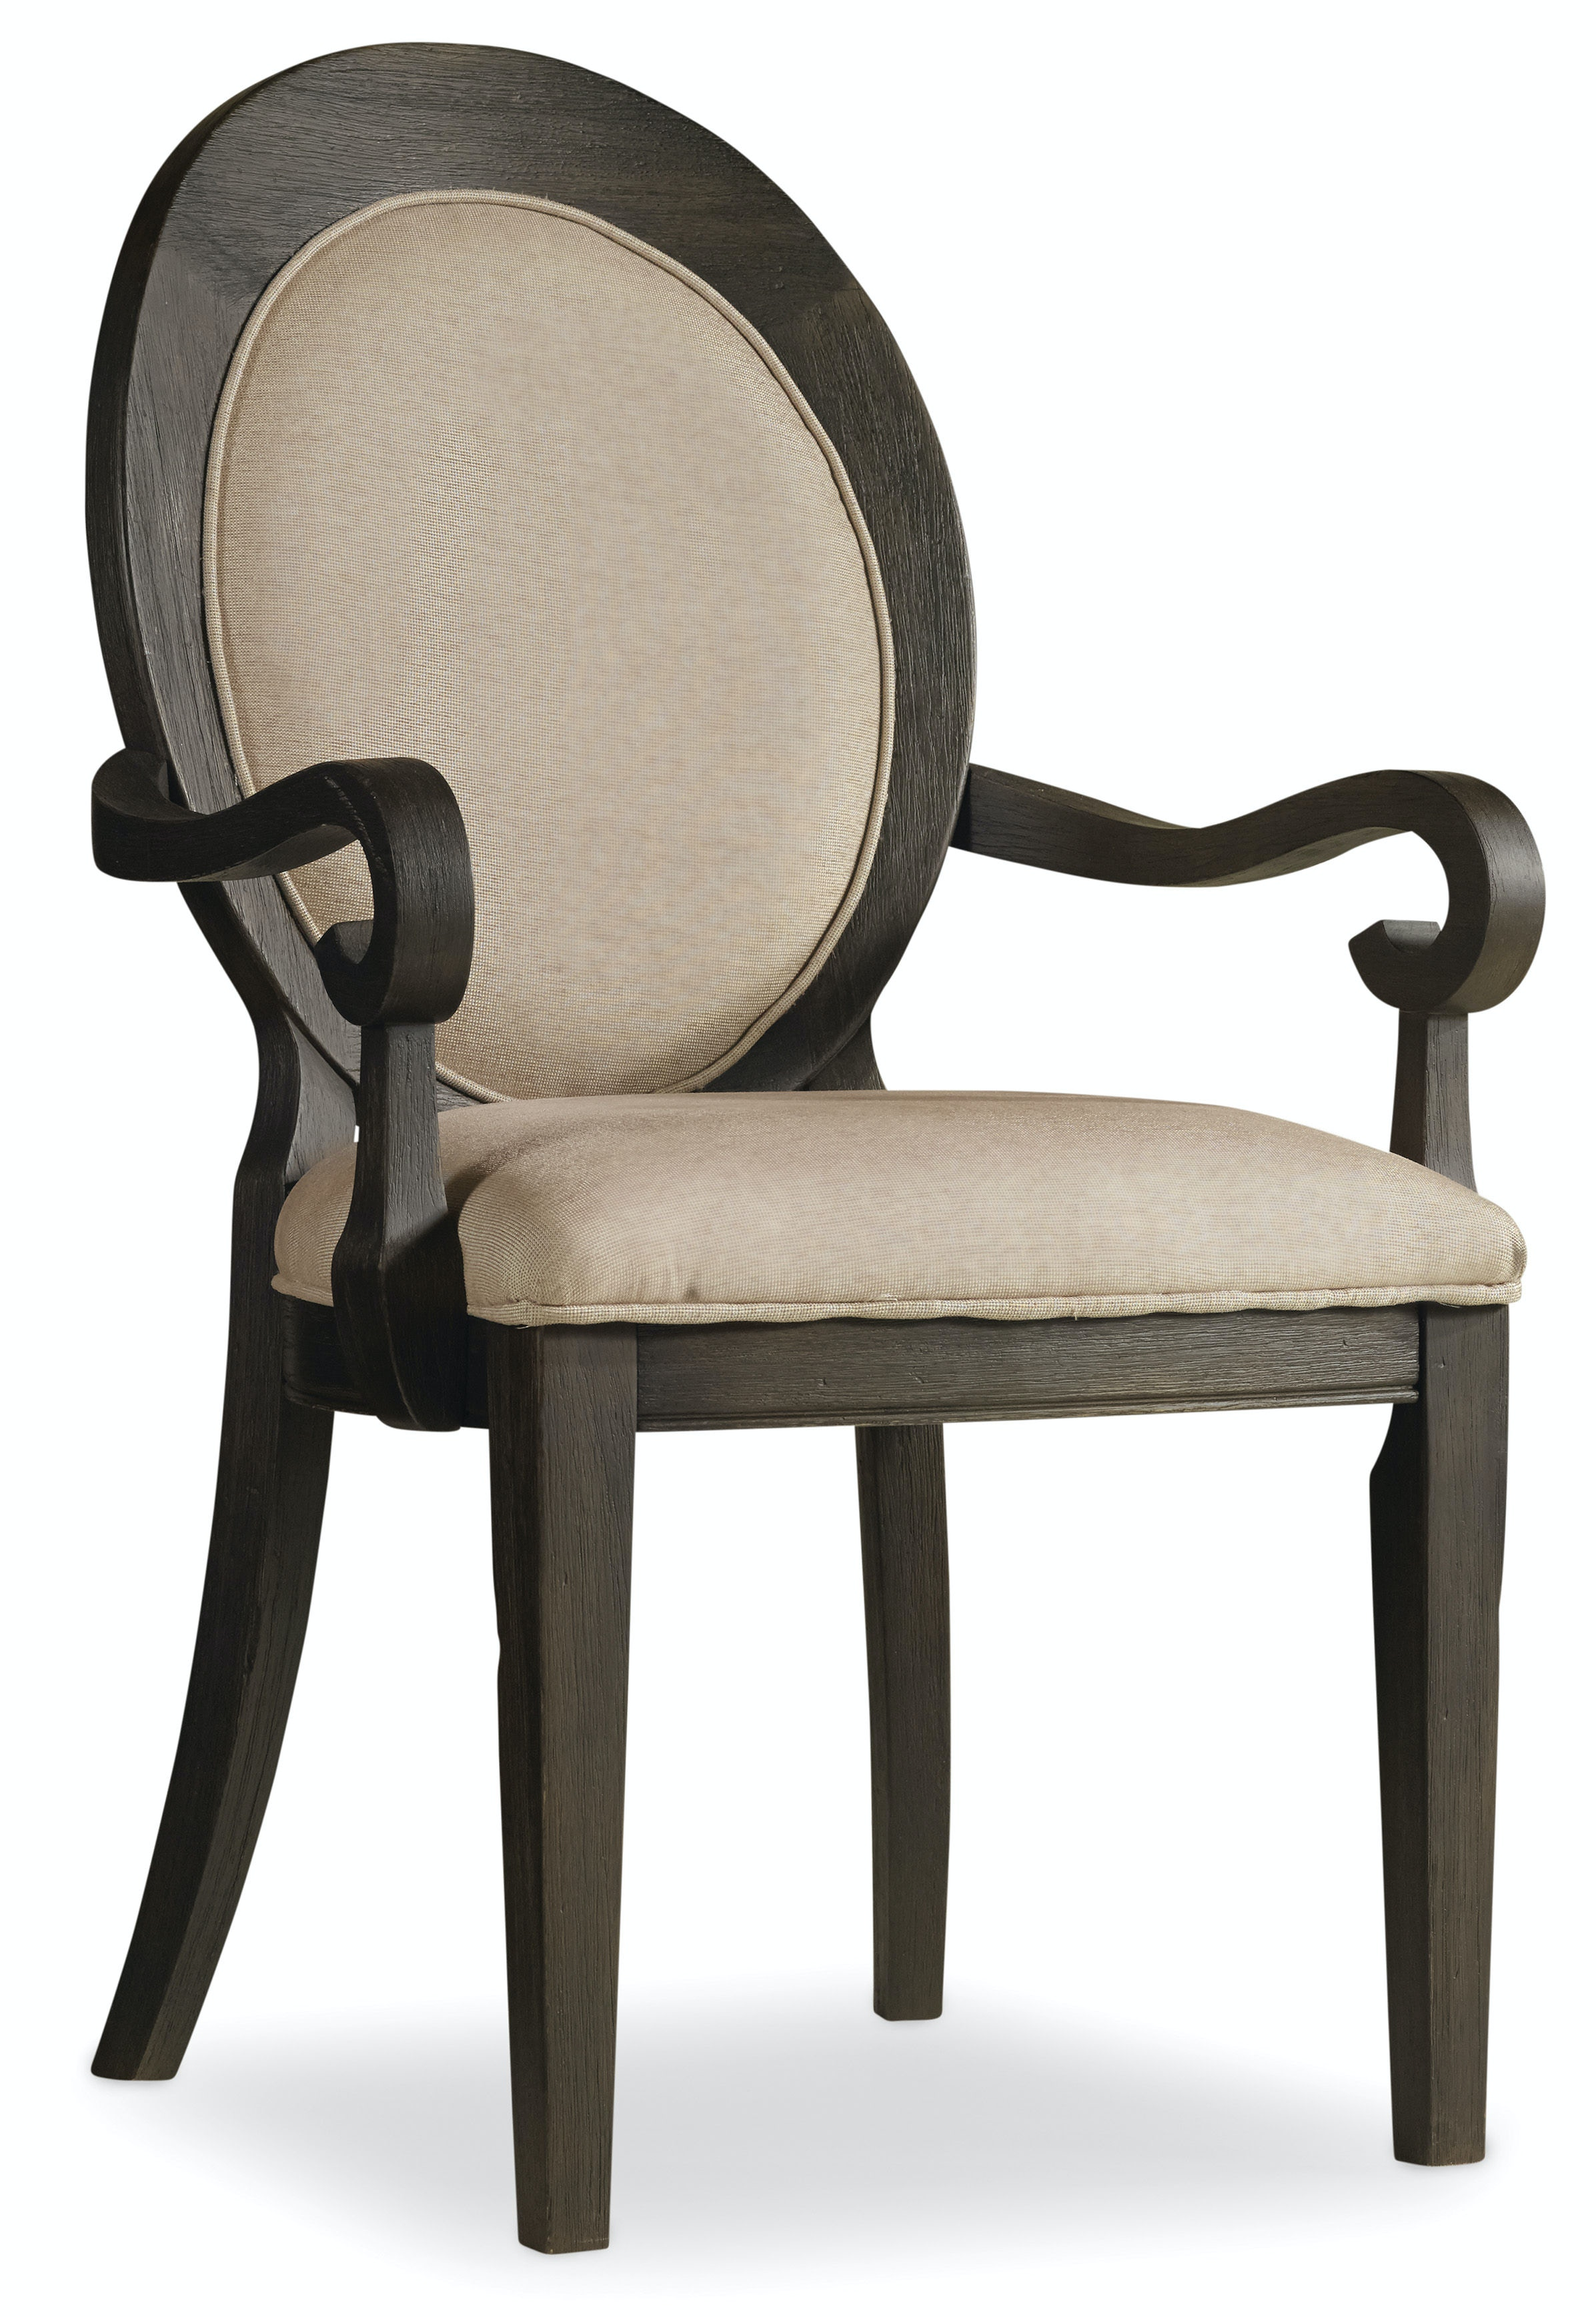 Hooker Furniture Corsica Dark Oval Back Arm Chair 5280-75402